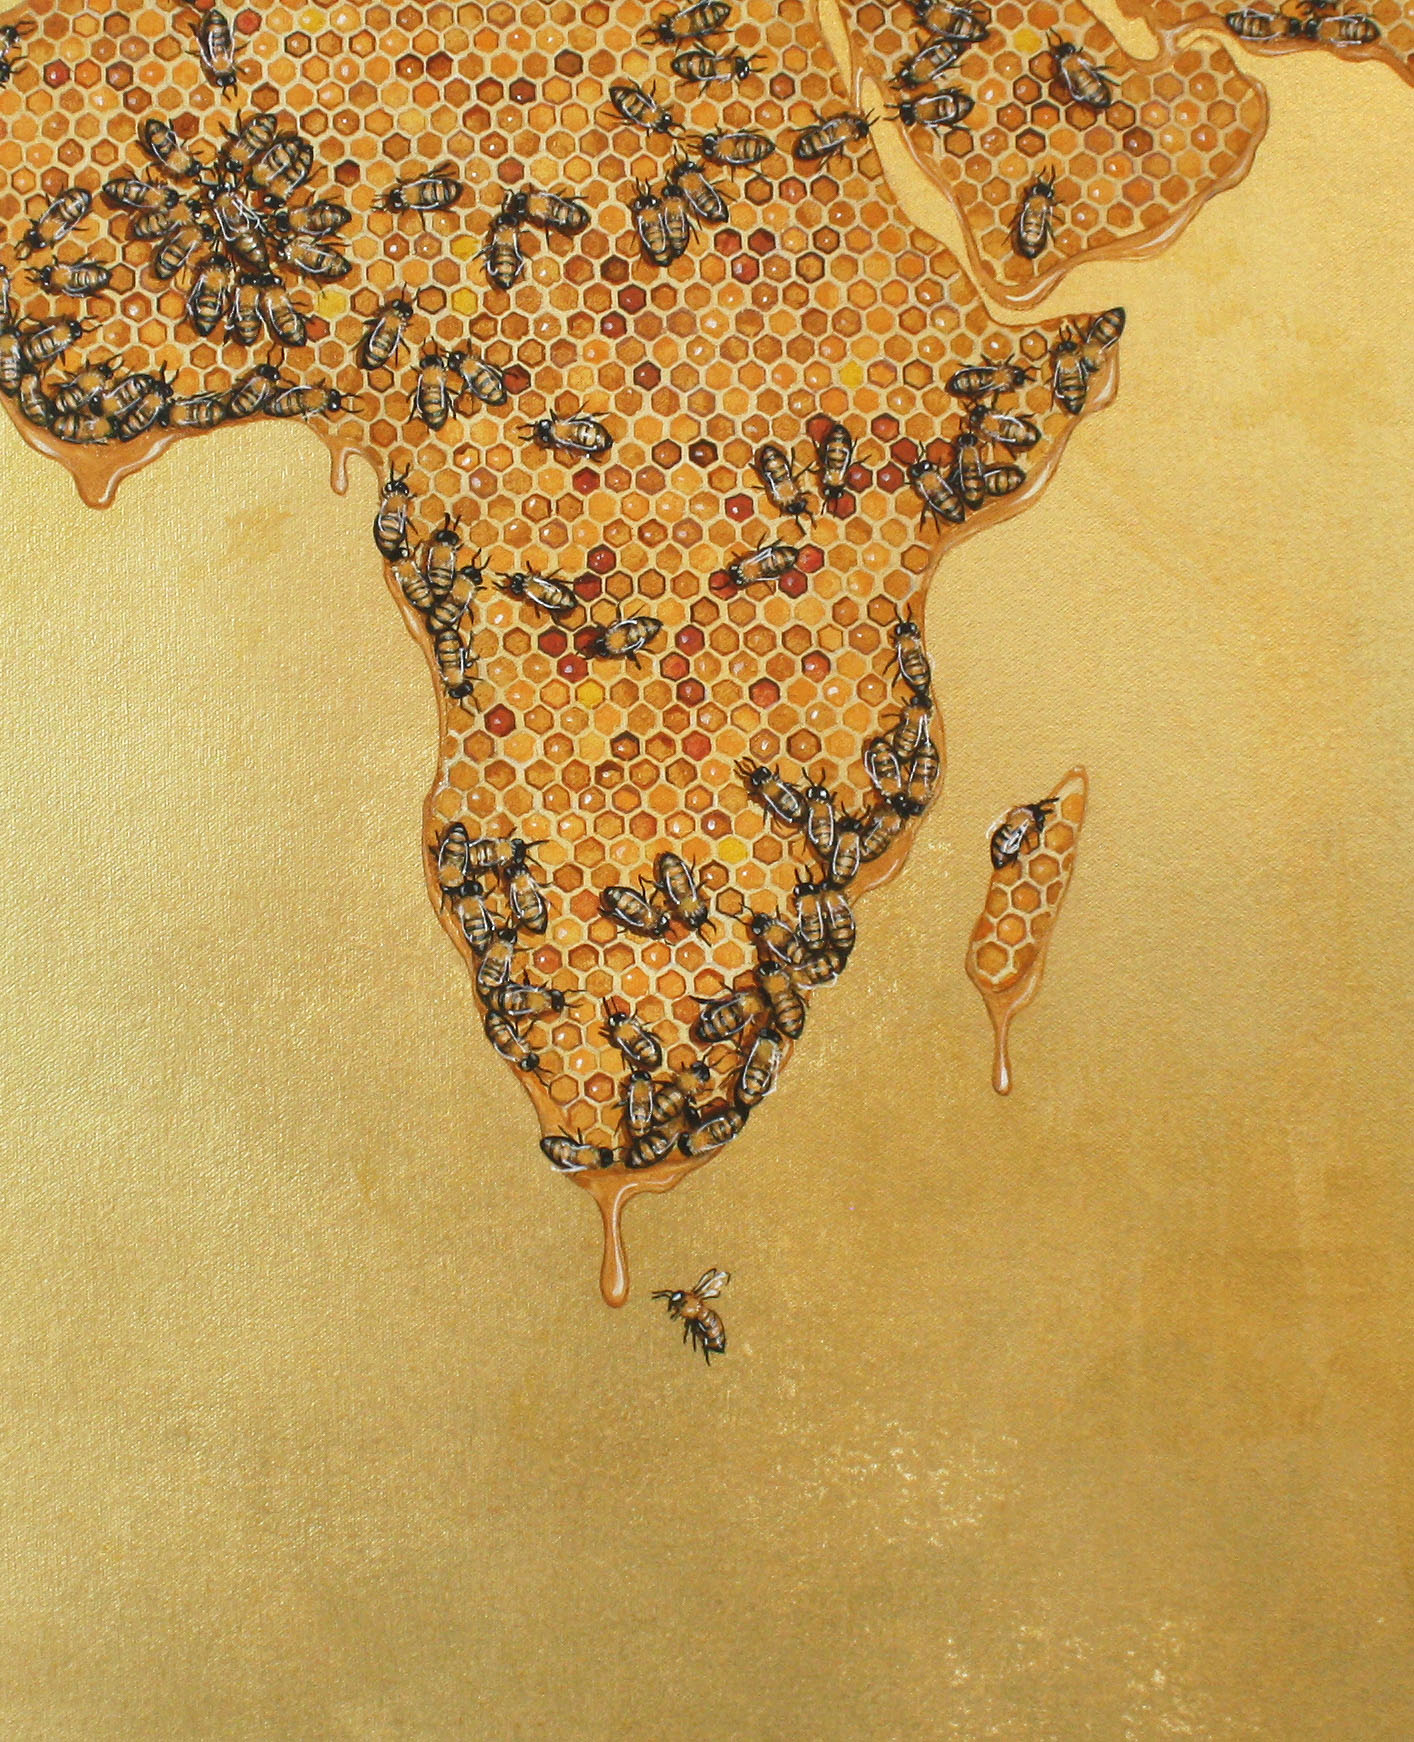 WorldBeesAfricaDetail.jpg